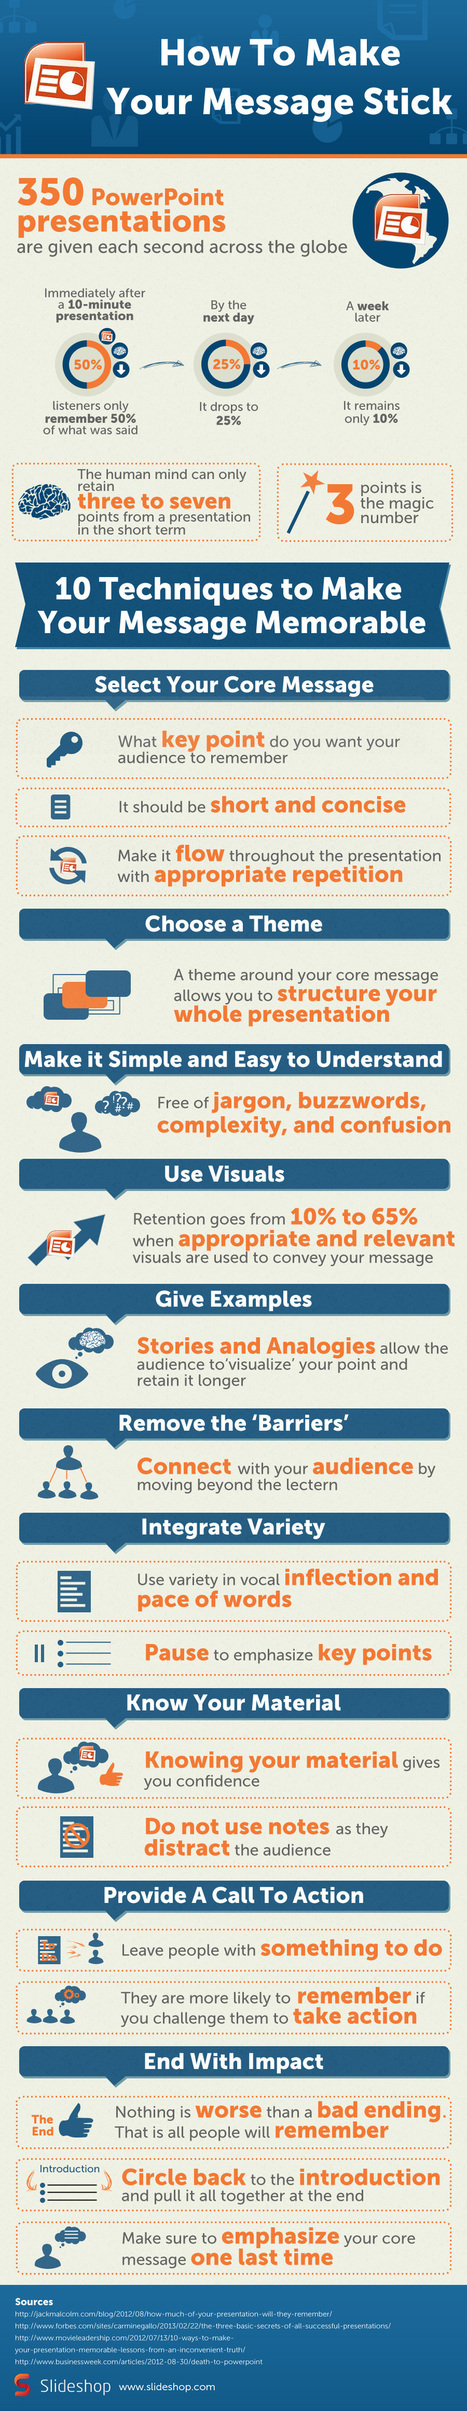 Presentations Infographic: Making Your Message Stick | 21st Century Adult Education | Scoop.it